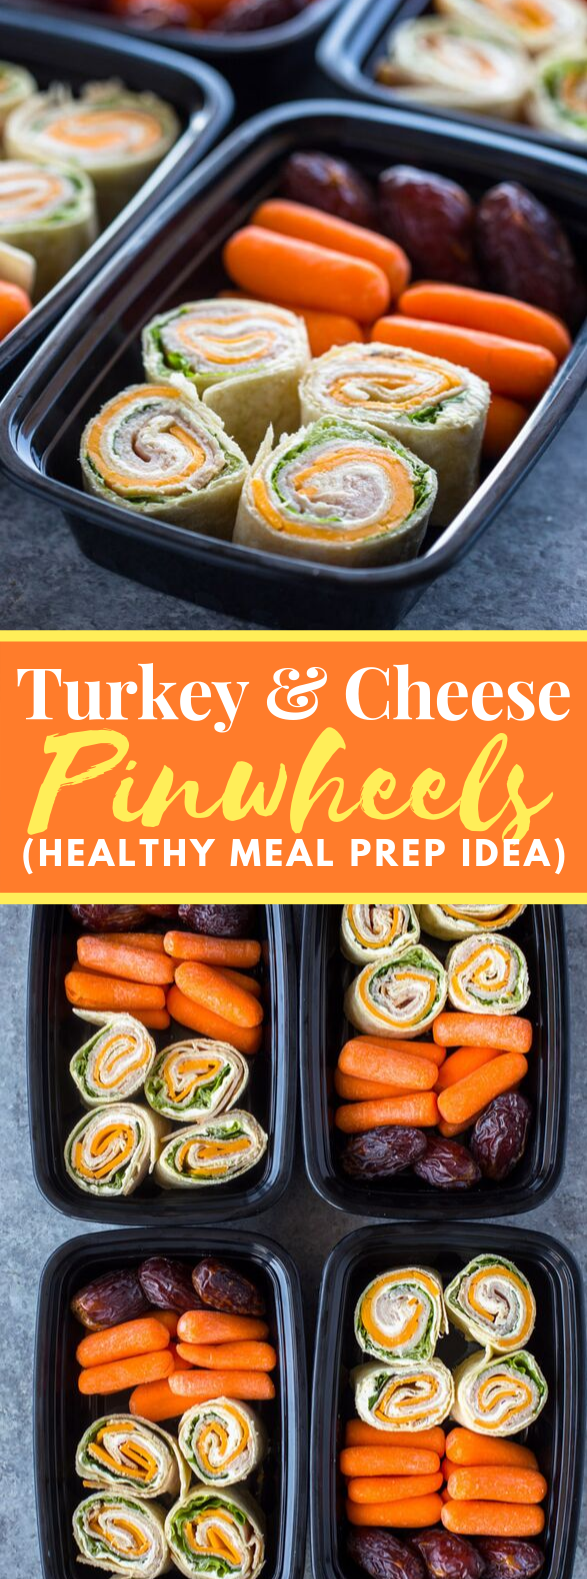 TURKEY AND CHEESE PINWHEELS (MEAL-PREP IDEA) #healthy #diet